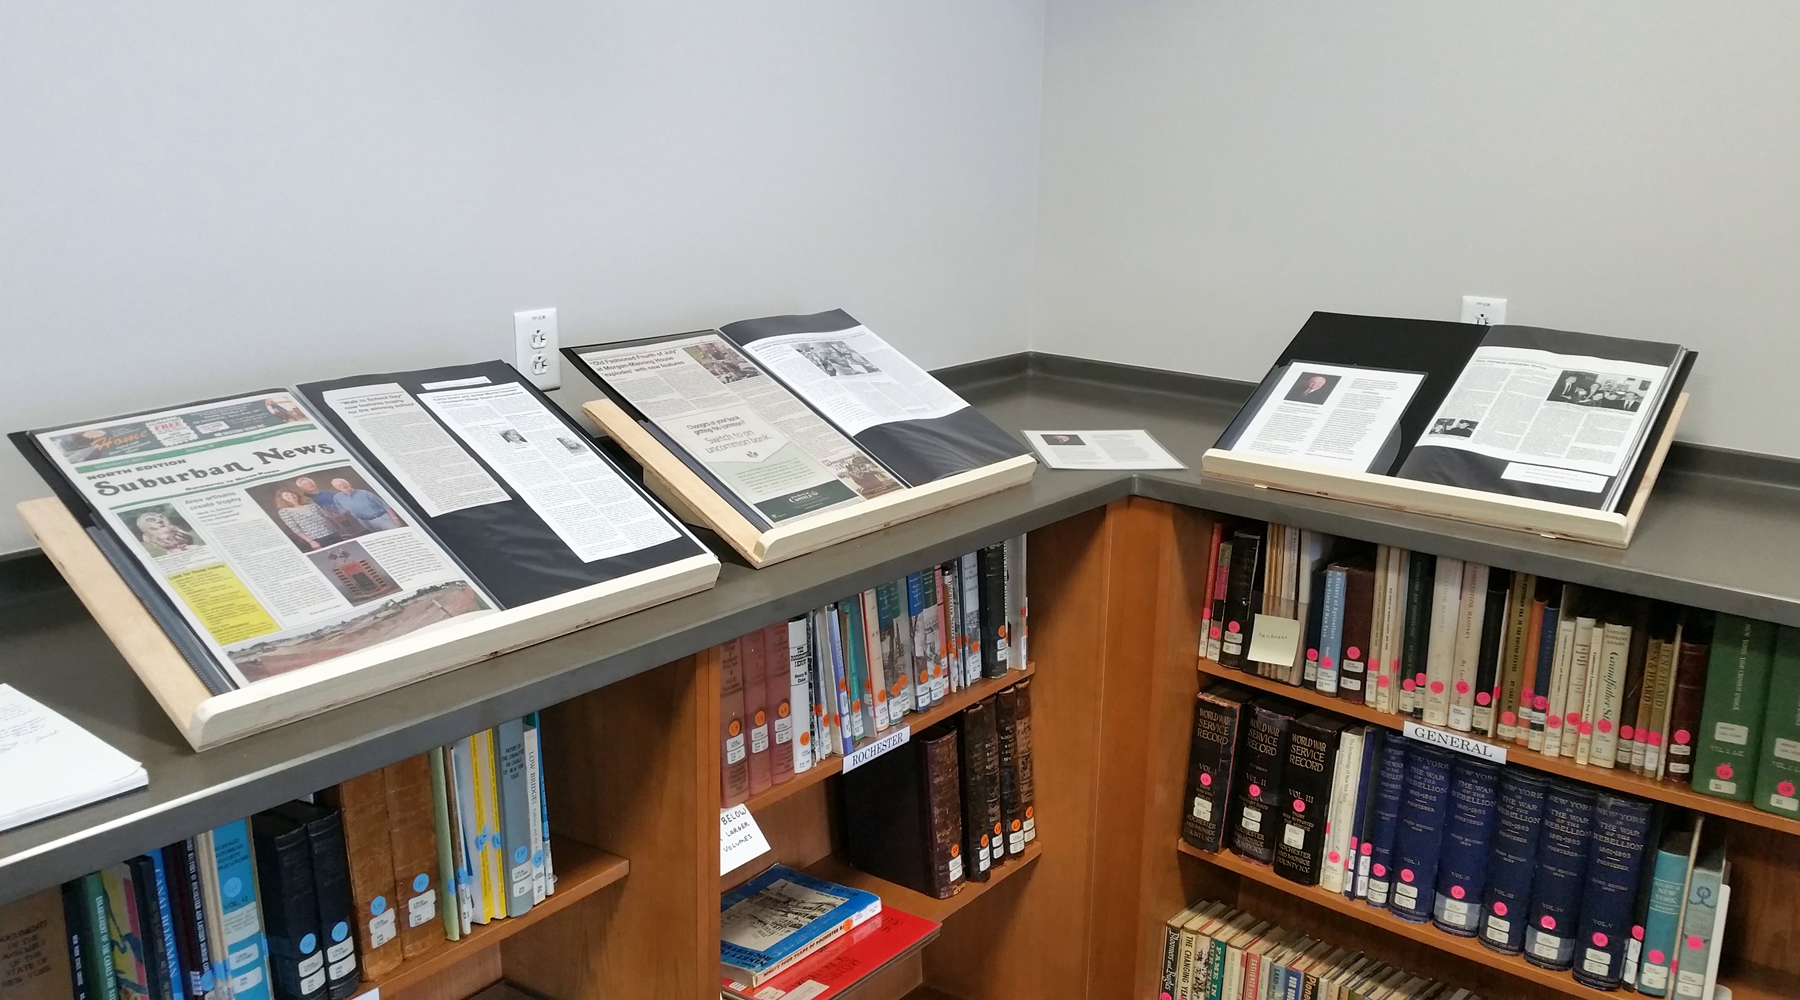 Westside News contributing writer Doug Hickerson has his portfolio of articles on display in the Seymour Library Local History Room. G. Griffee photo